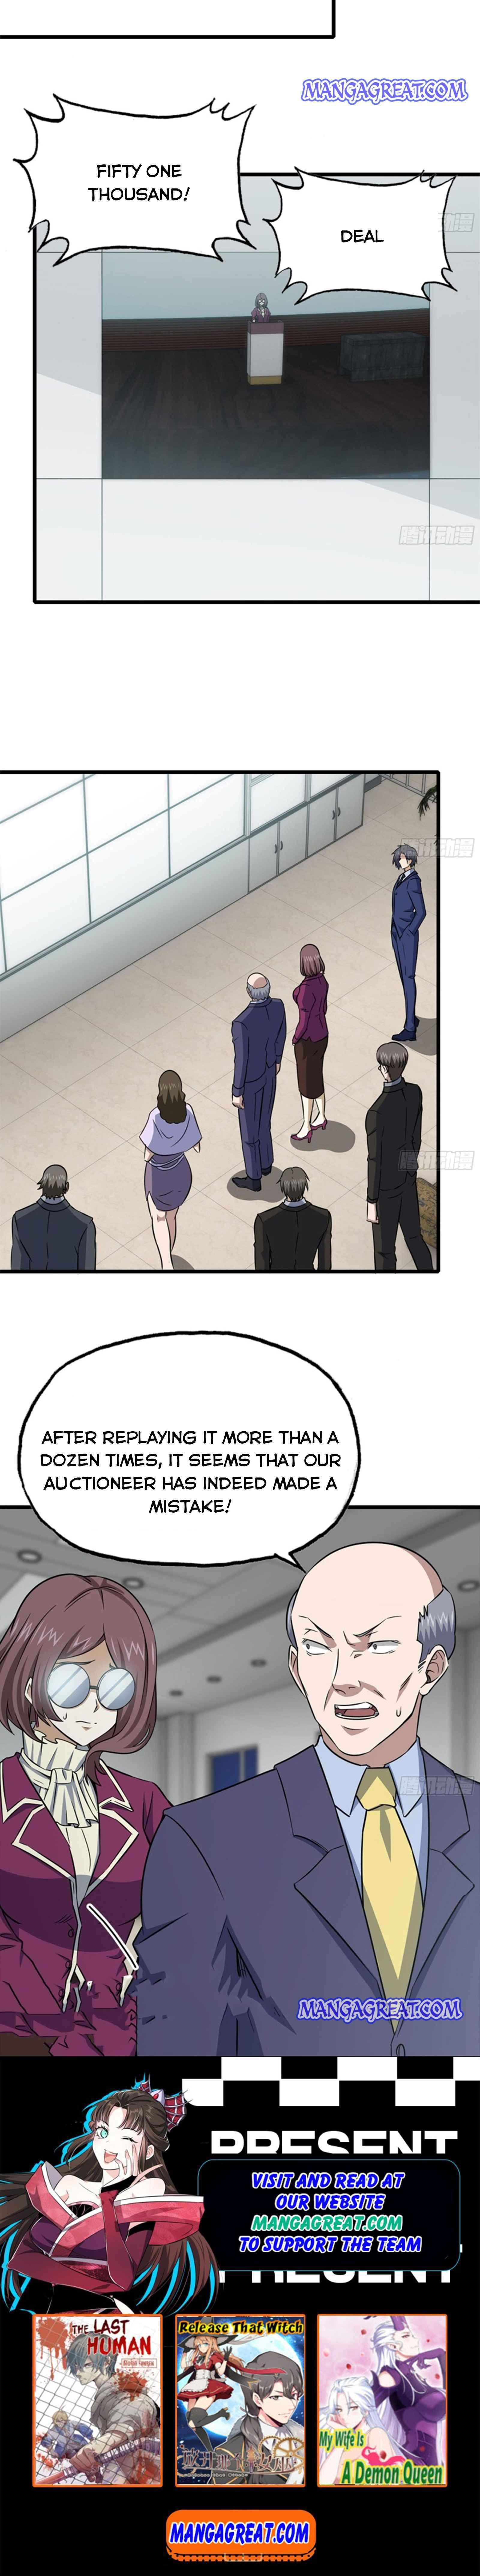 I Am Carrying Gold From The Post-Apocalyptic World Chapter 163 page 10 - Mangakakalots.com